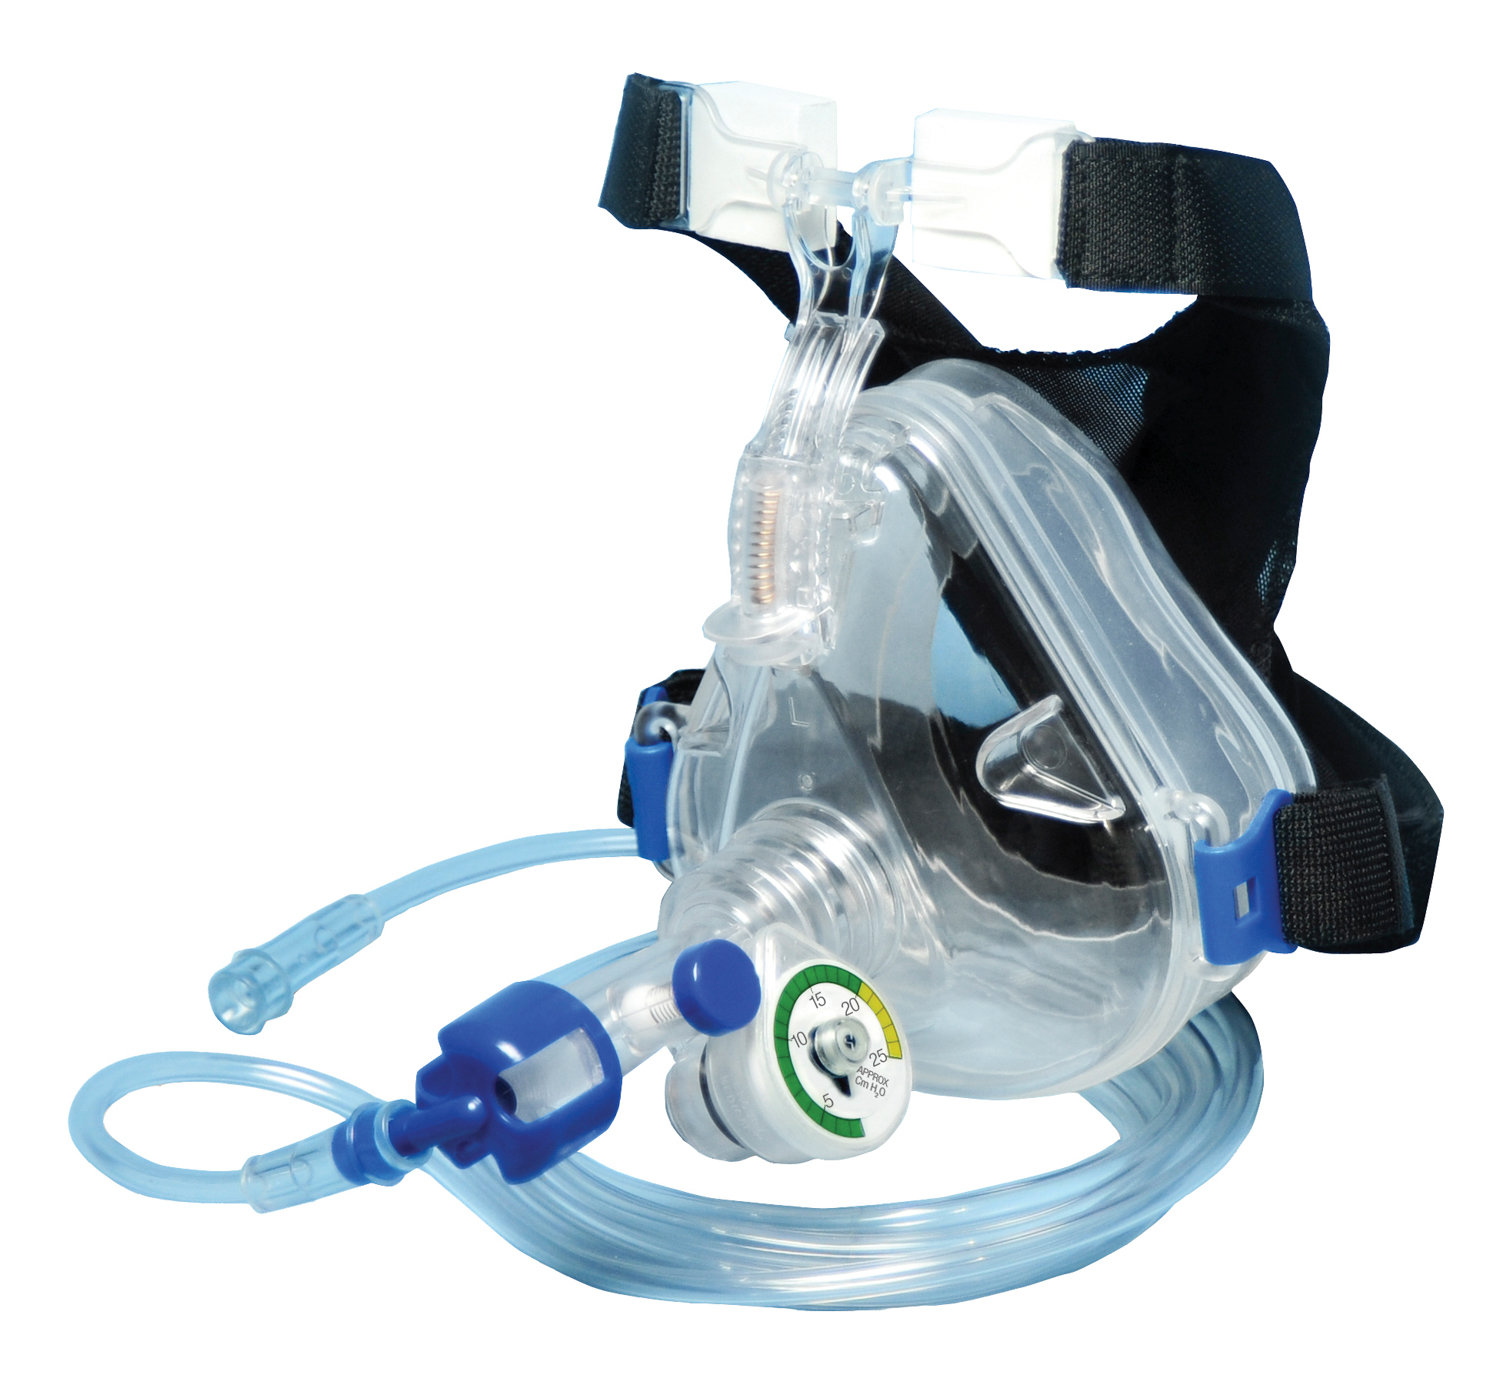 Mercury Medical ramped up production of its Flow-Safe II CPAP mask thanks to the efforts of U.S. Rep. Eliot Engel to reactivate a Malaysian plant shut down because of the coronavirus pandemic. The Florida-based company offered its masks as alternatives to ventilators, for those suffering later stages of COVID-19.